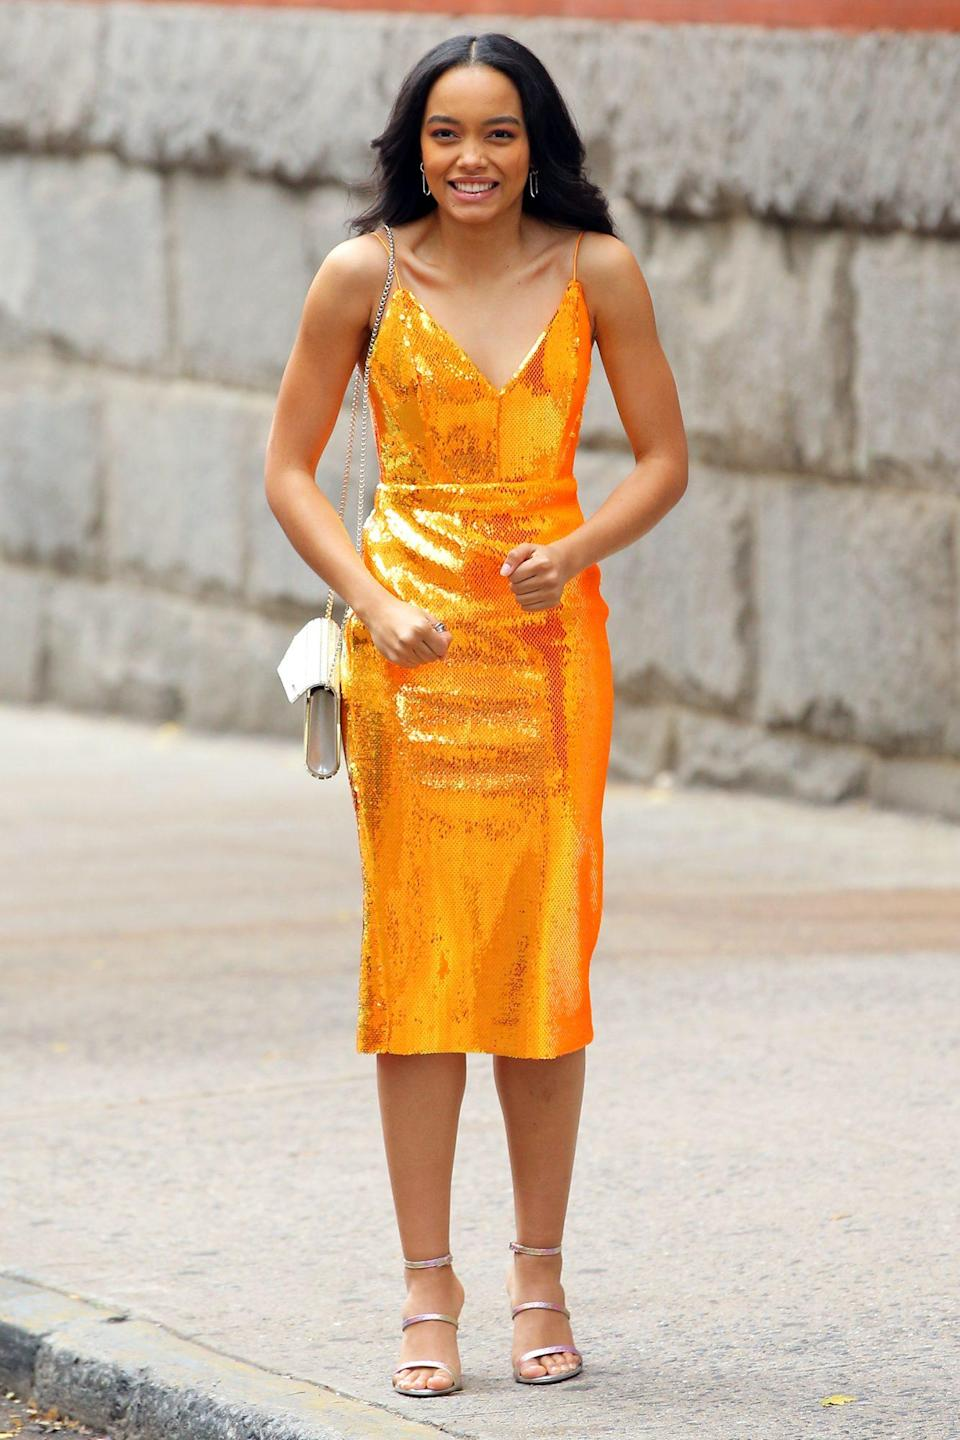 <p>Whitney Peak films a scene for the <i>Gossip Girl</i> reboot in an orange sequin cocktail dress on a chilly Tuesday in N.Y.C. </p>